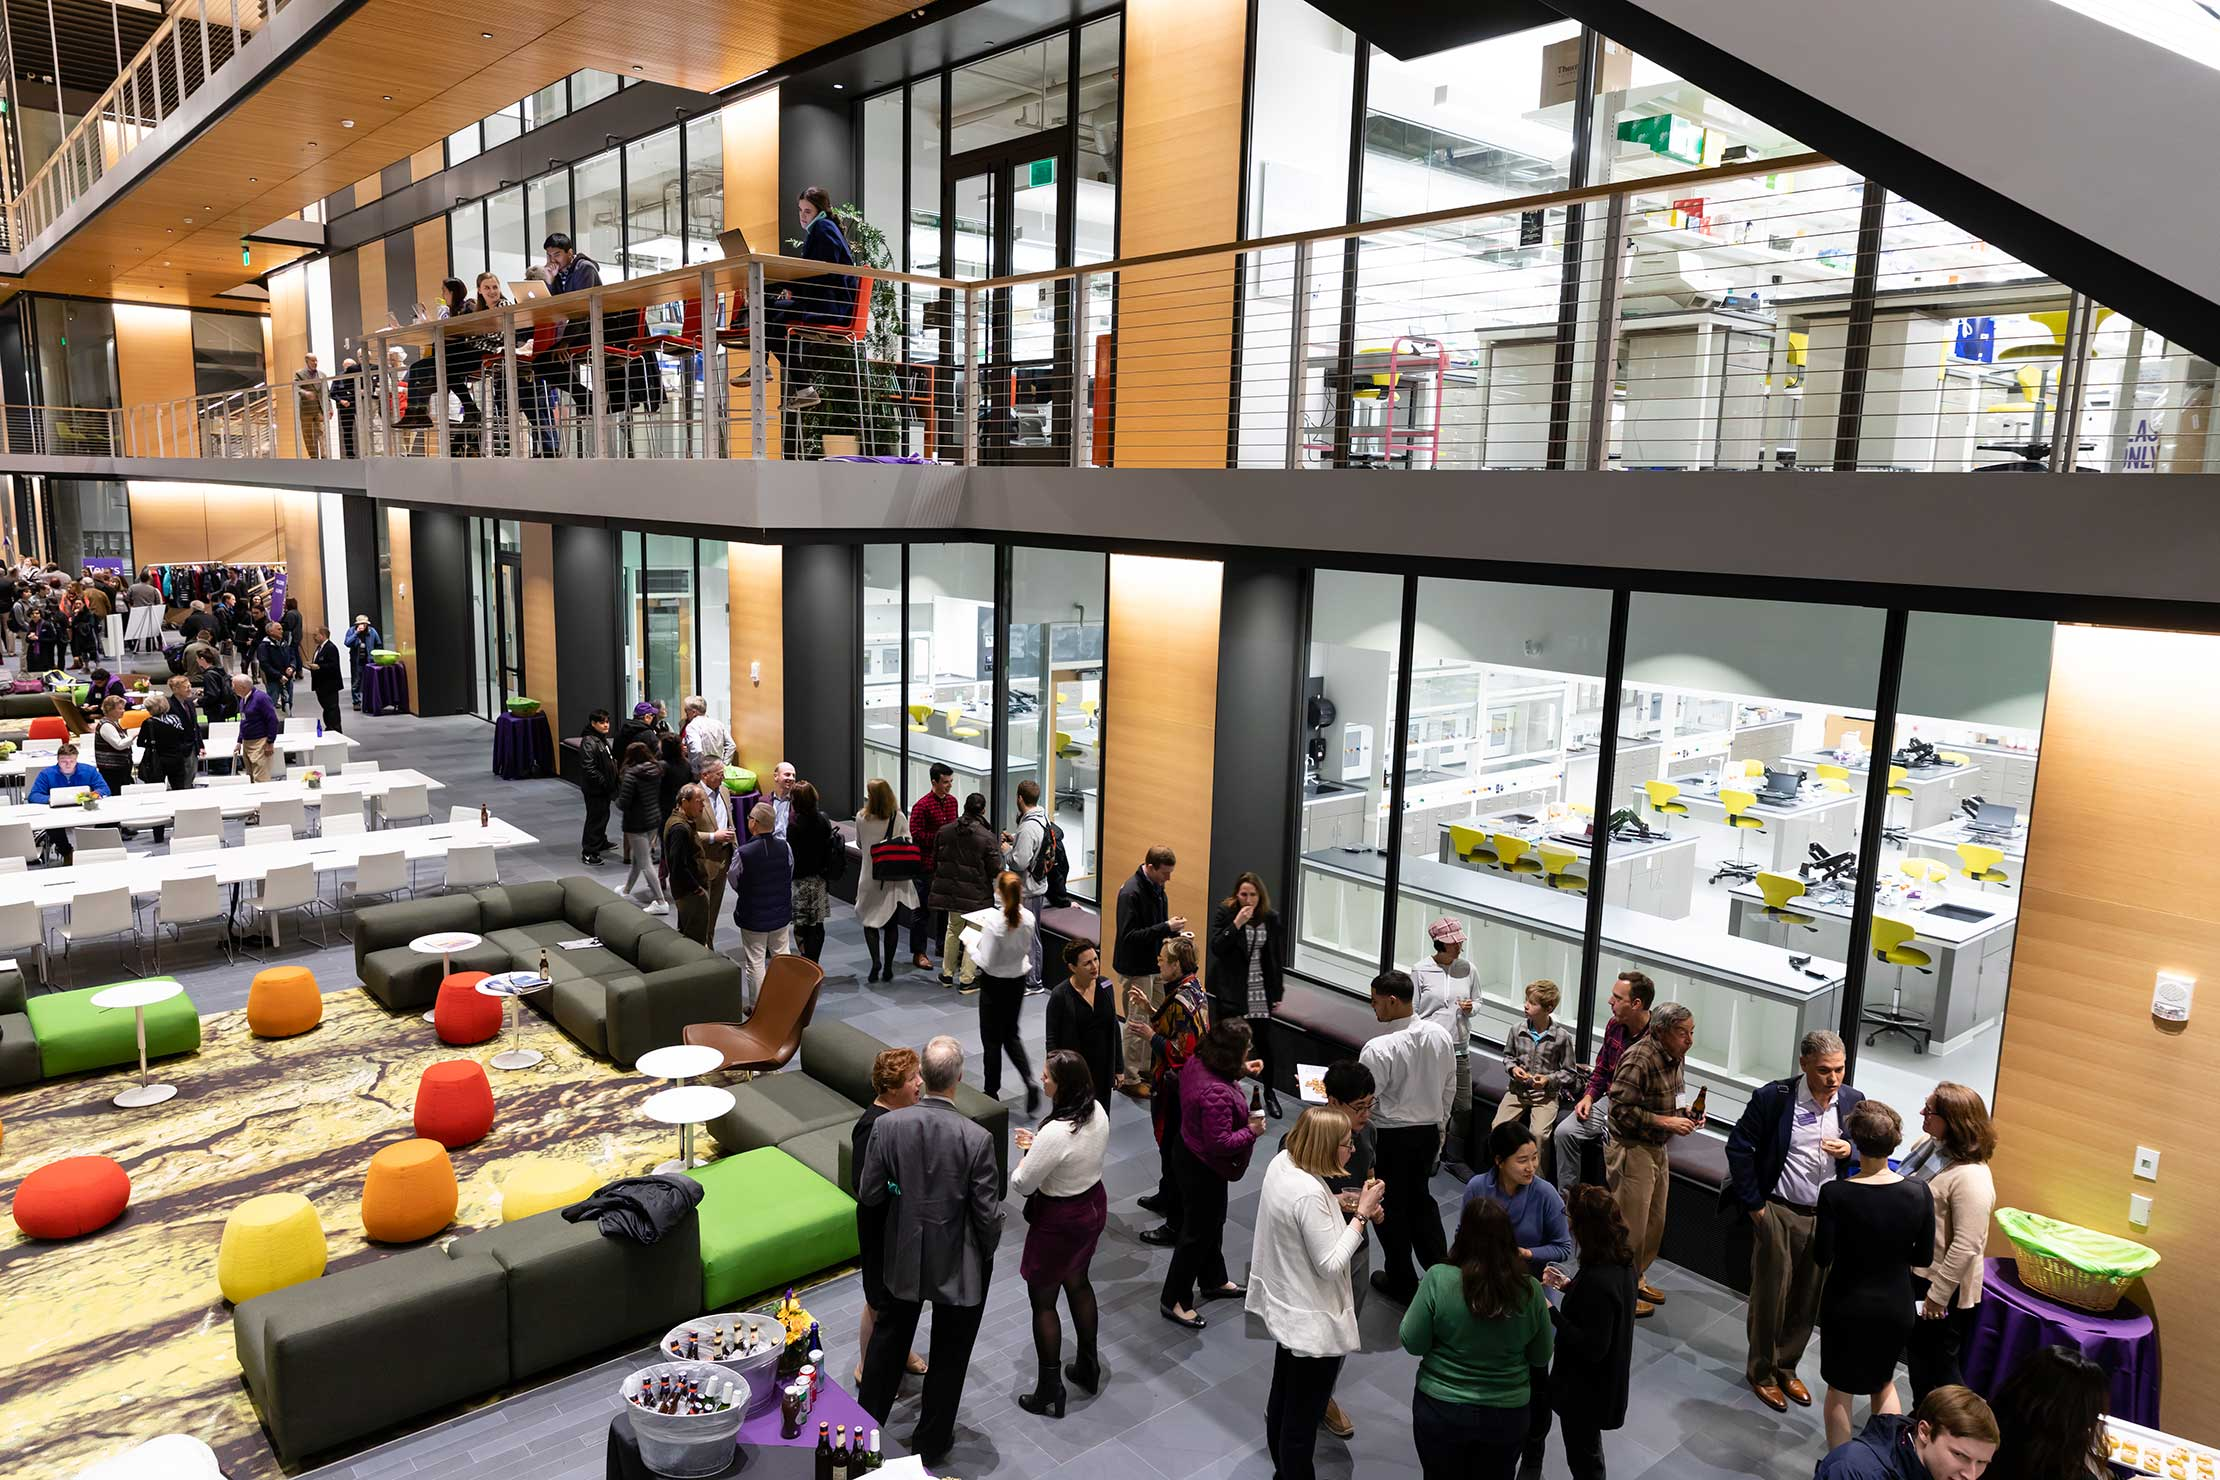 Visitors enjoyed a reception in the new Science Center.